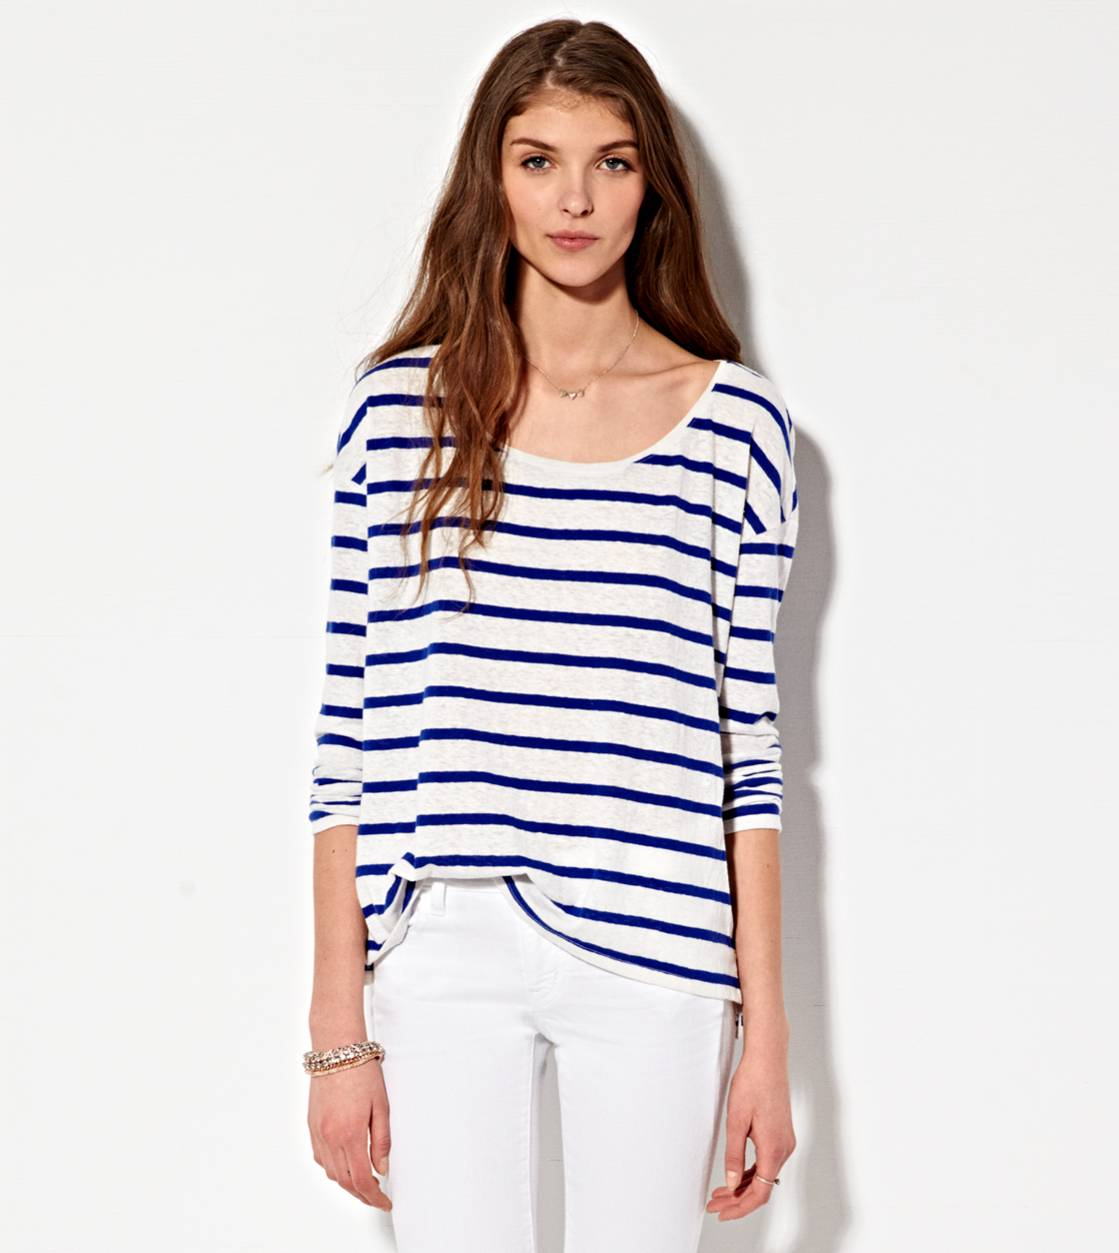 Cobalt Blue AE Striped T-Shirt